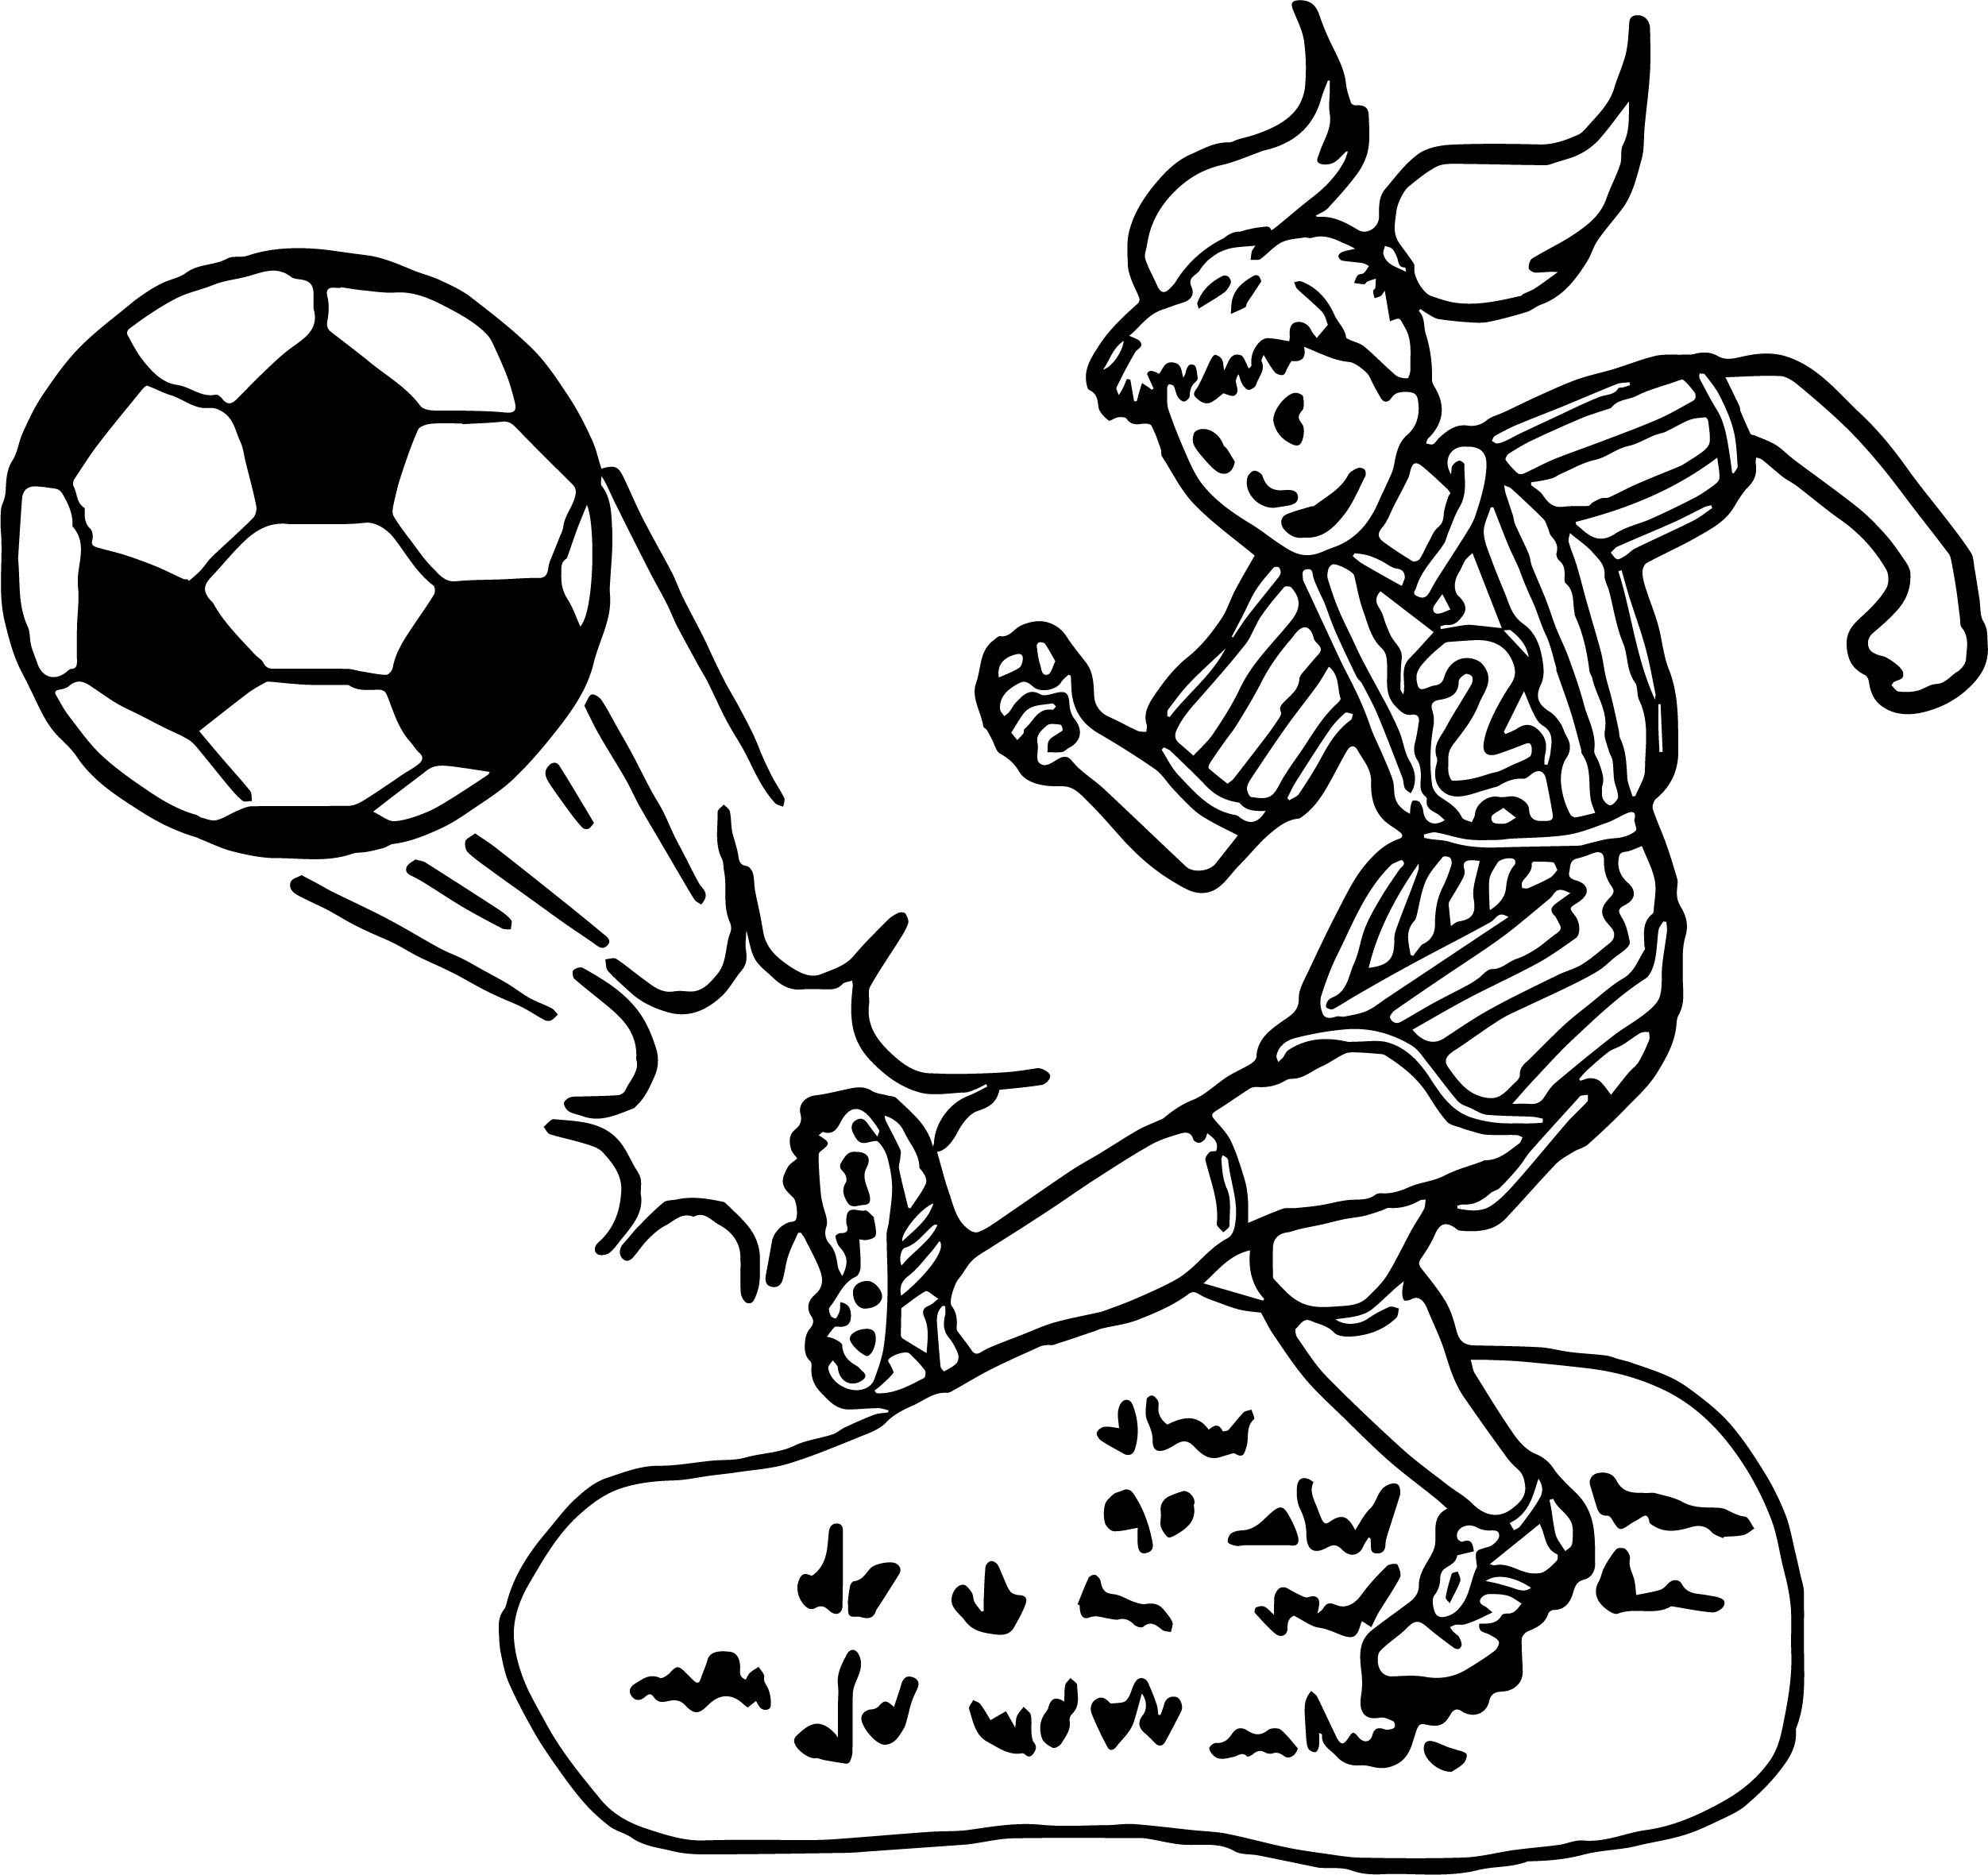 Cool Kid Girl Playing Soccer Playing Football Coloring Page